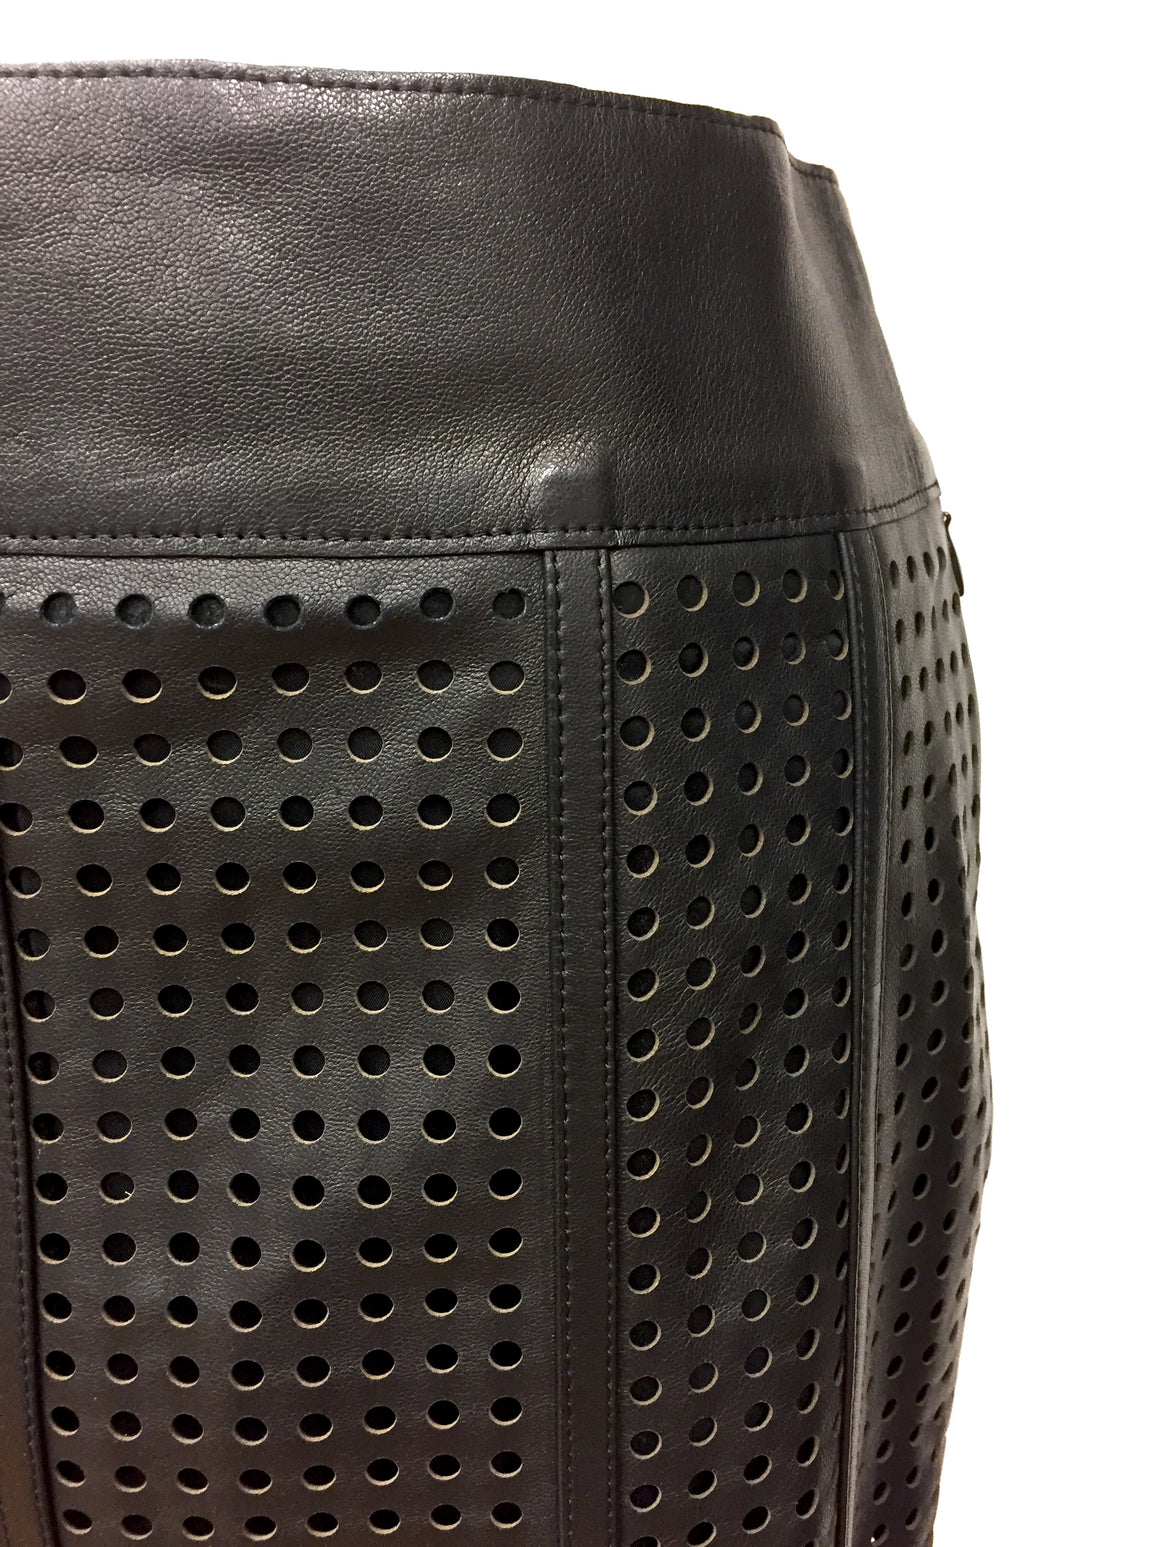 New TOM FORD Black Laser-Cut Leather Pencil Skirt Sz IT36/US 4